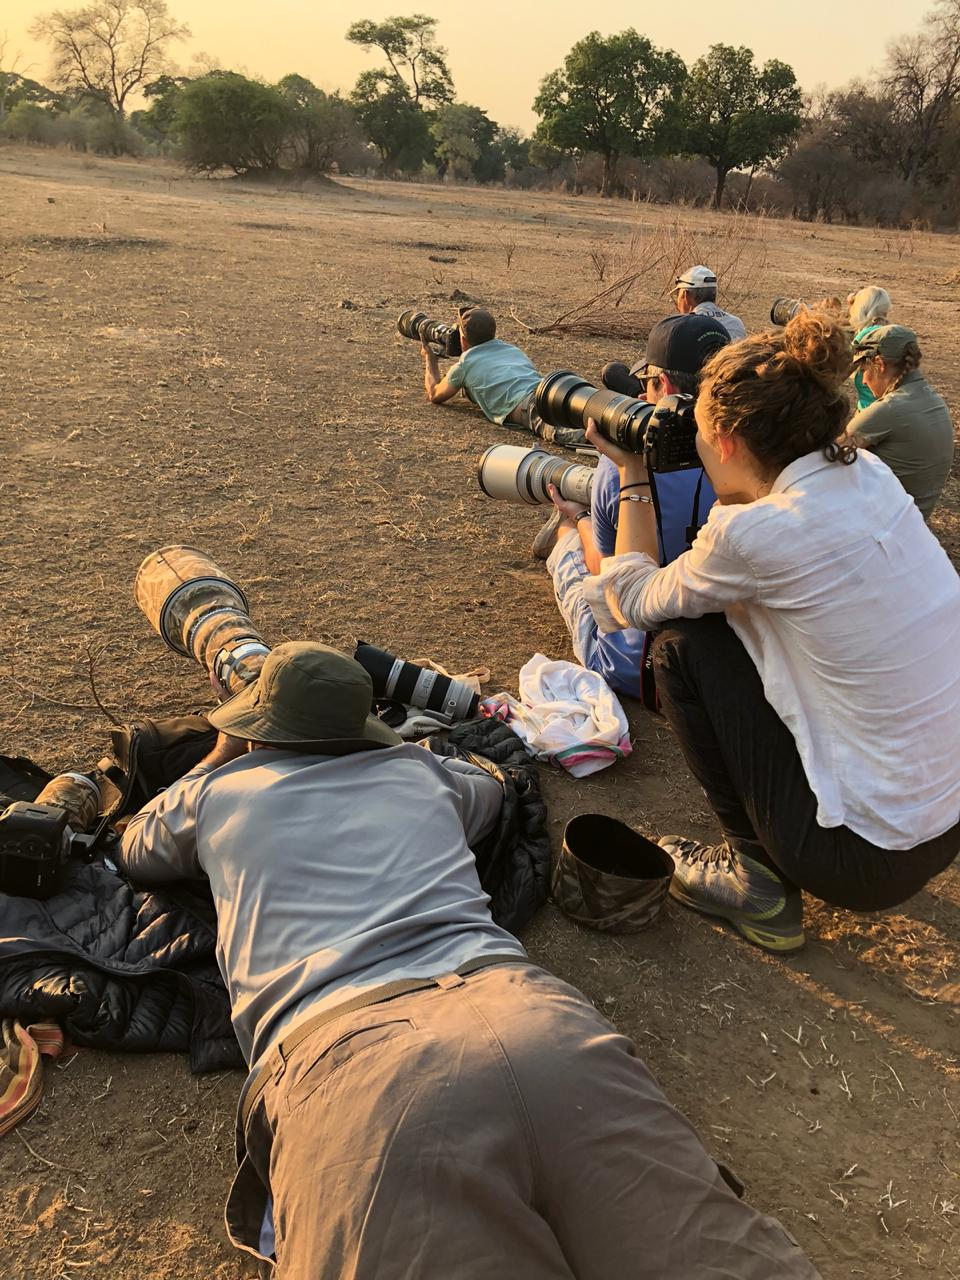 shooting in a pile of impala dung. Yum